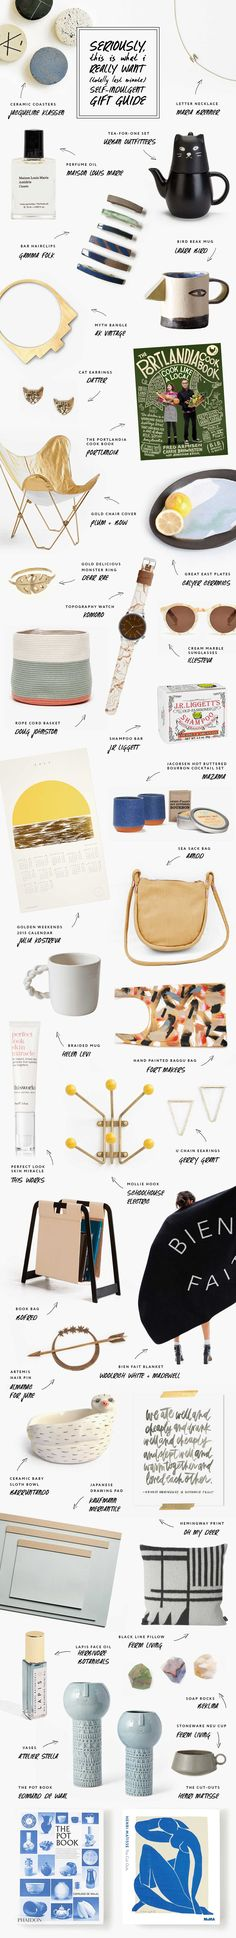 Miss Moss 2014 Gift Guide